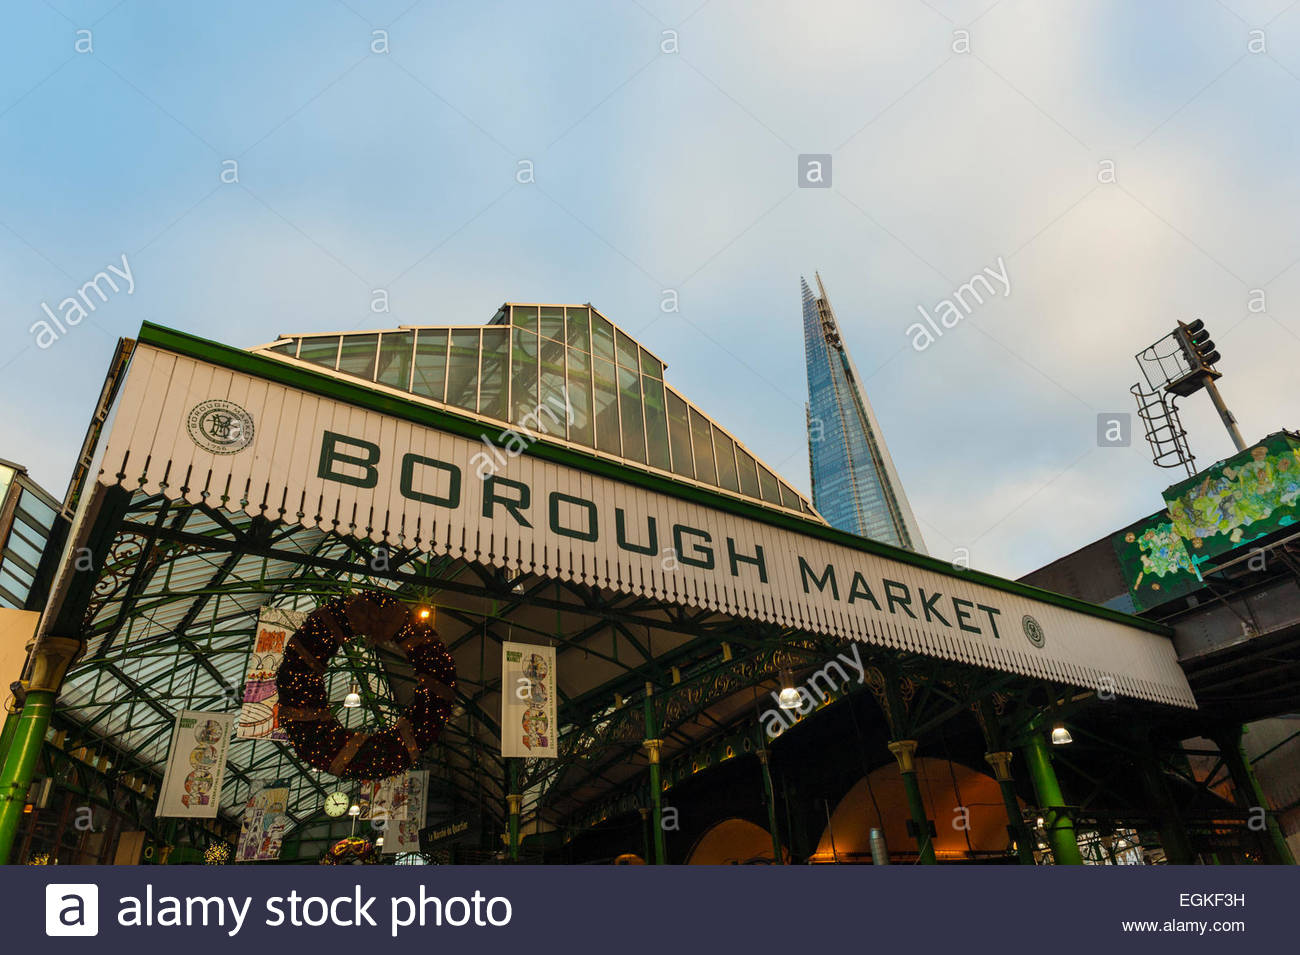 Entrance to Borough Market london - Stock Image